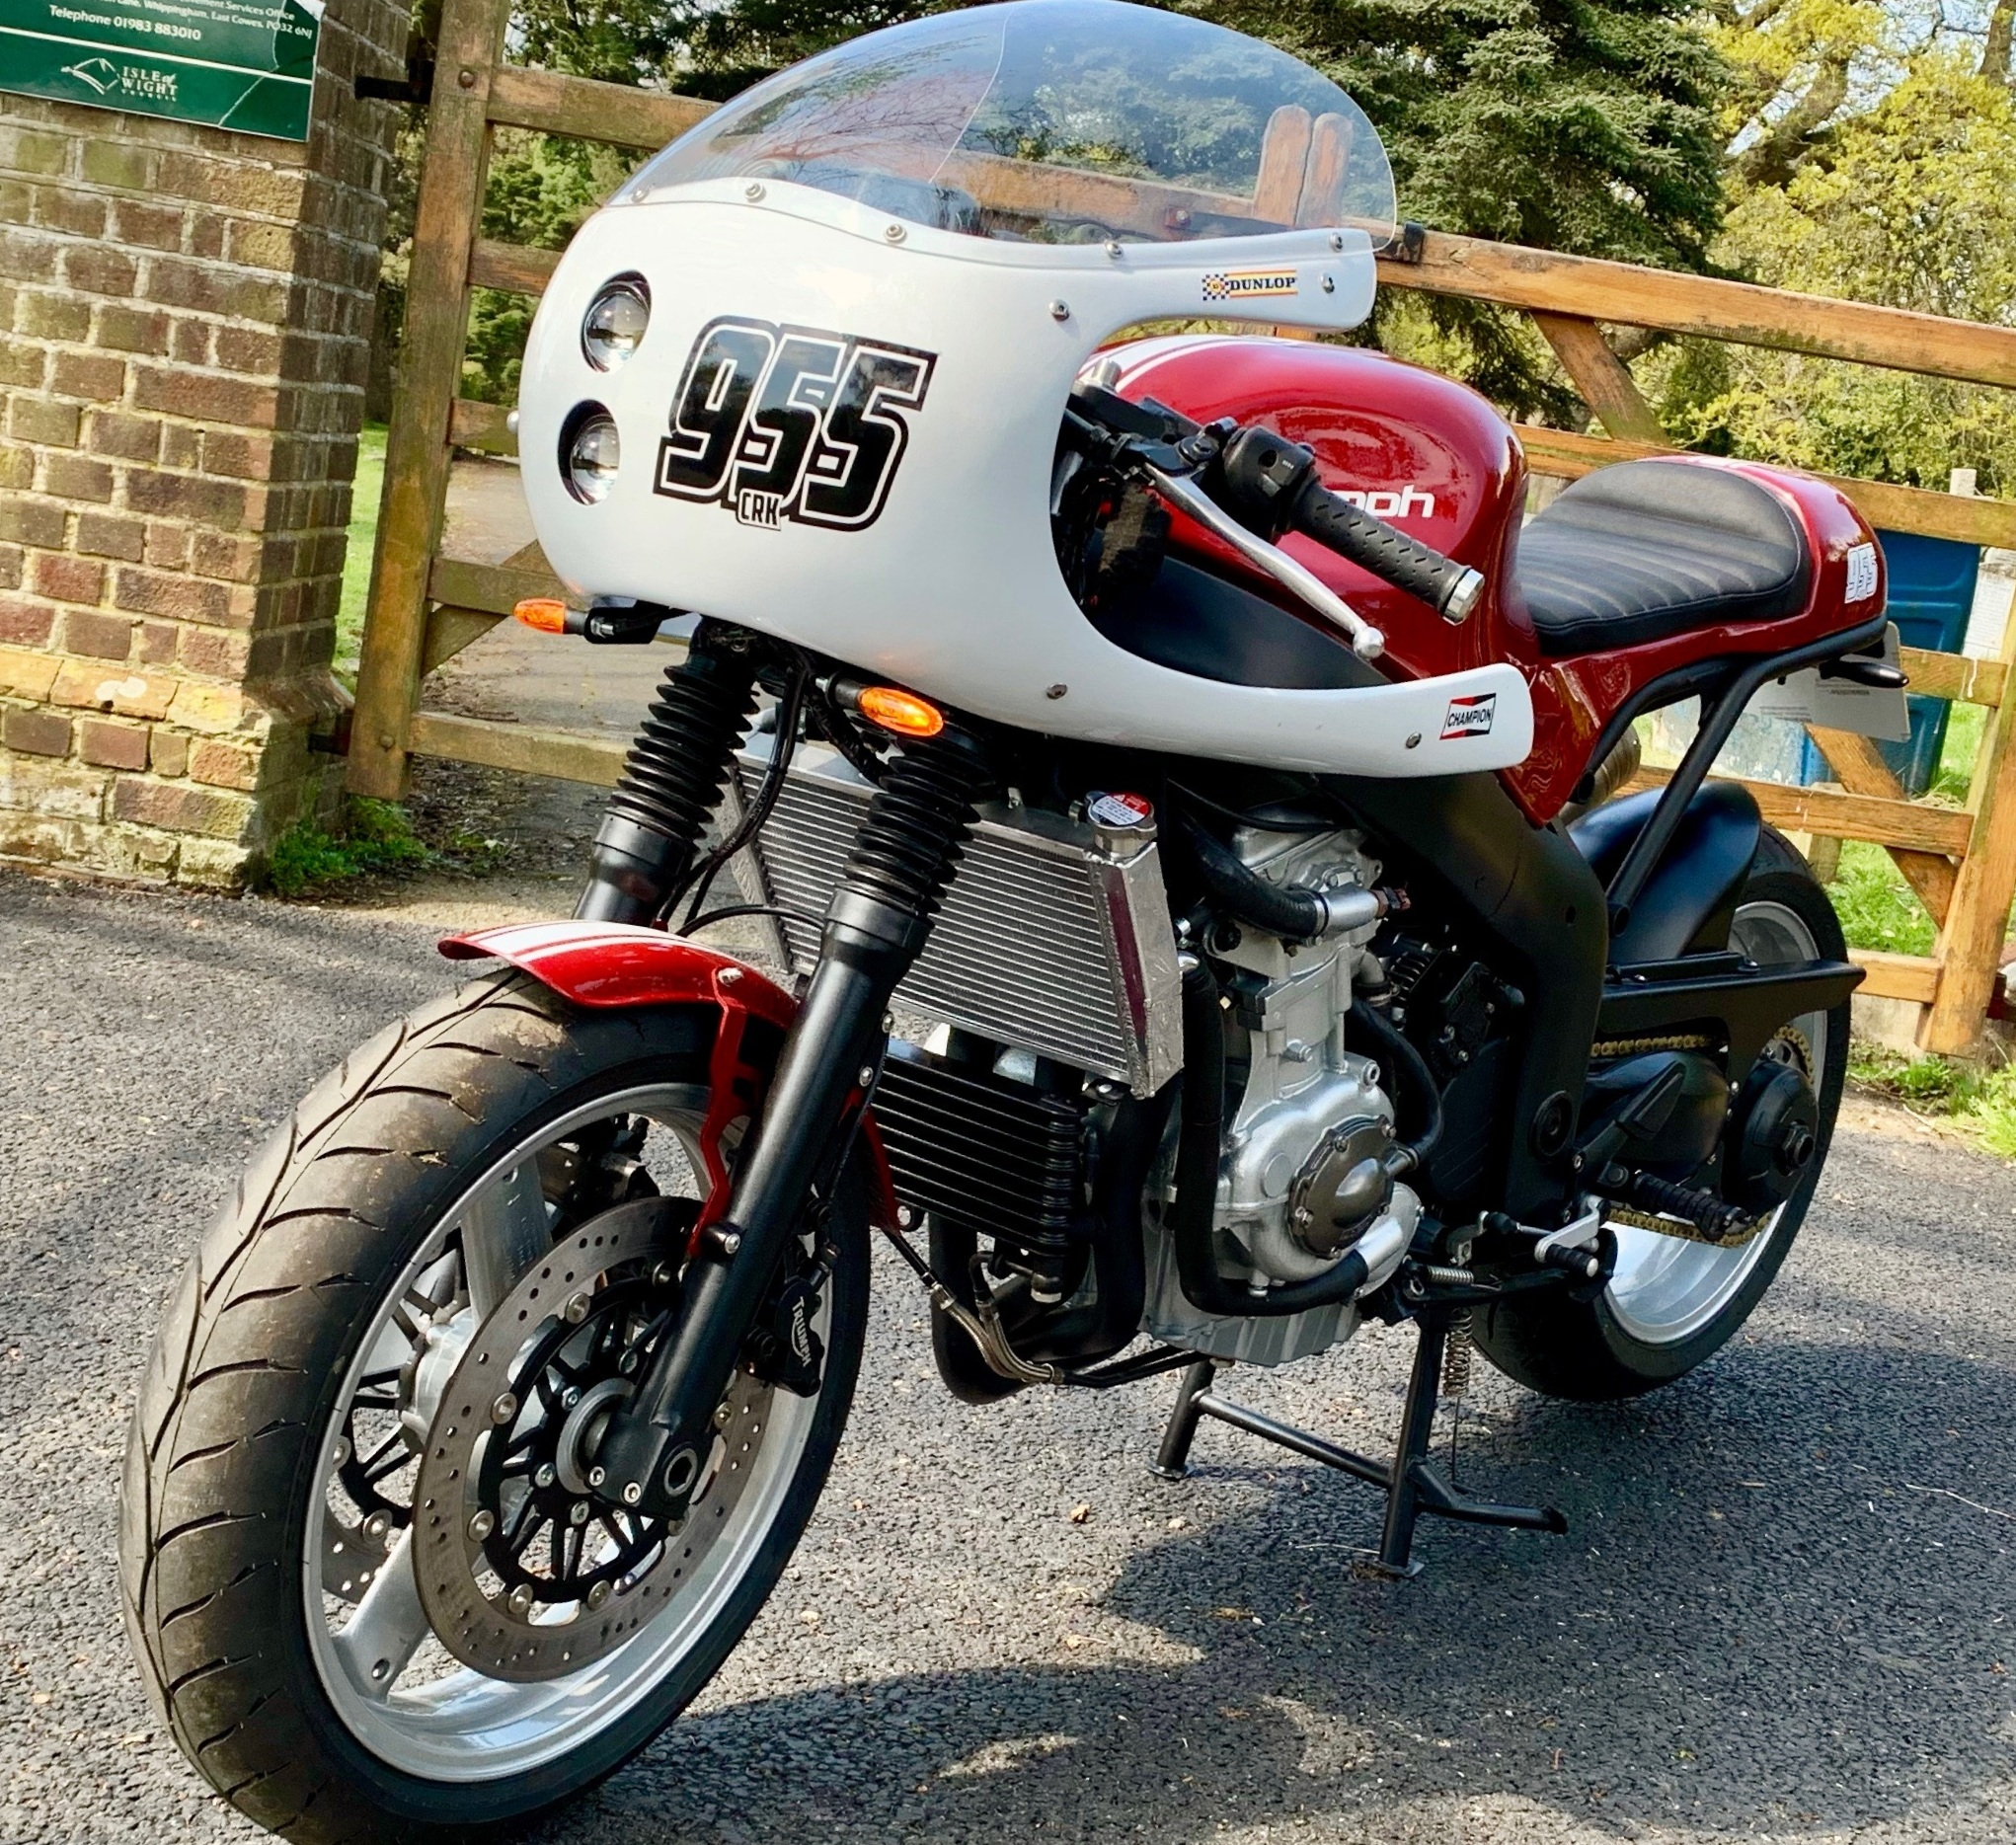 CRK launches a new kit - Triumph 955ST — Cafe Racer Kits and